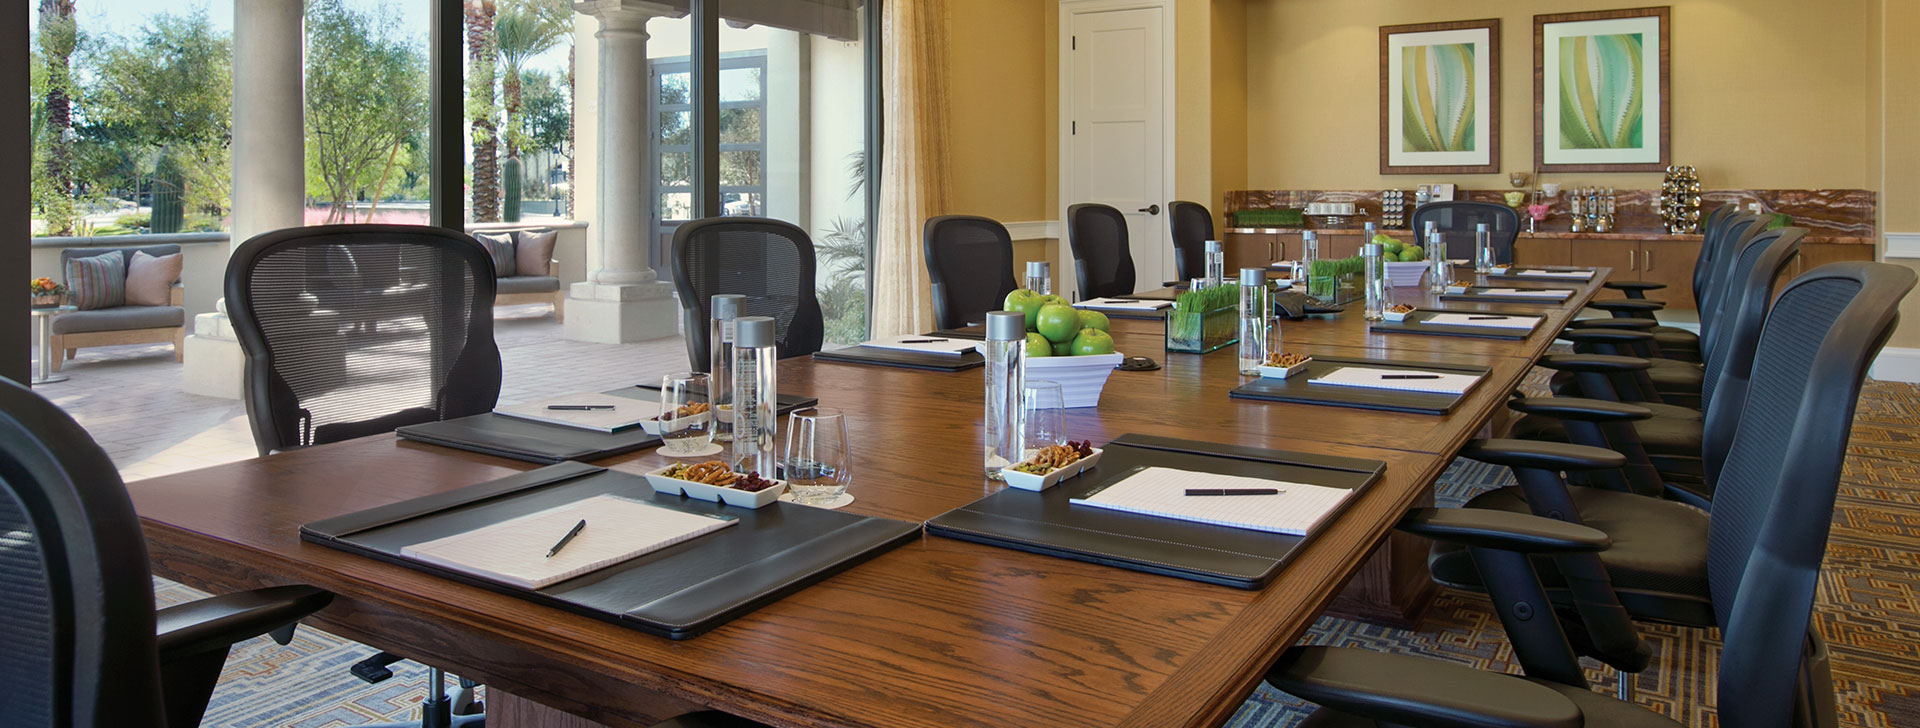 Meetings Inquiry at Fairmont Scottsdale Princess, Arizona